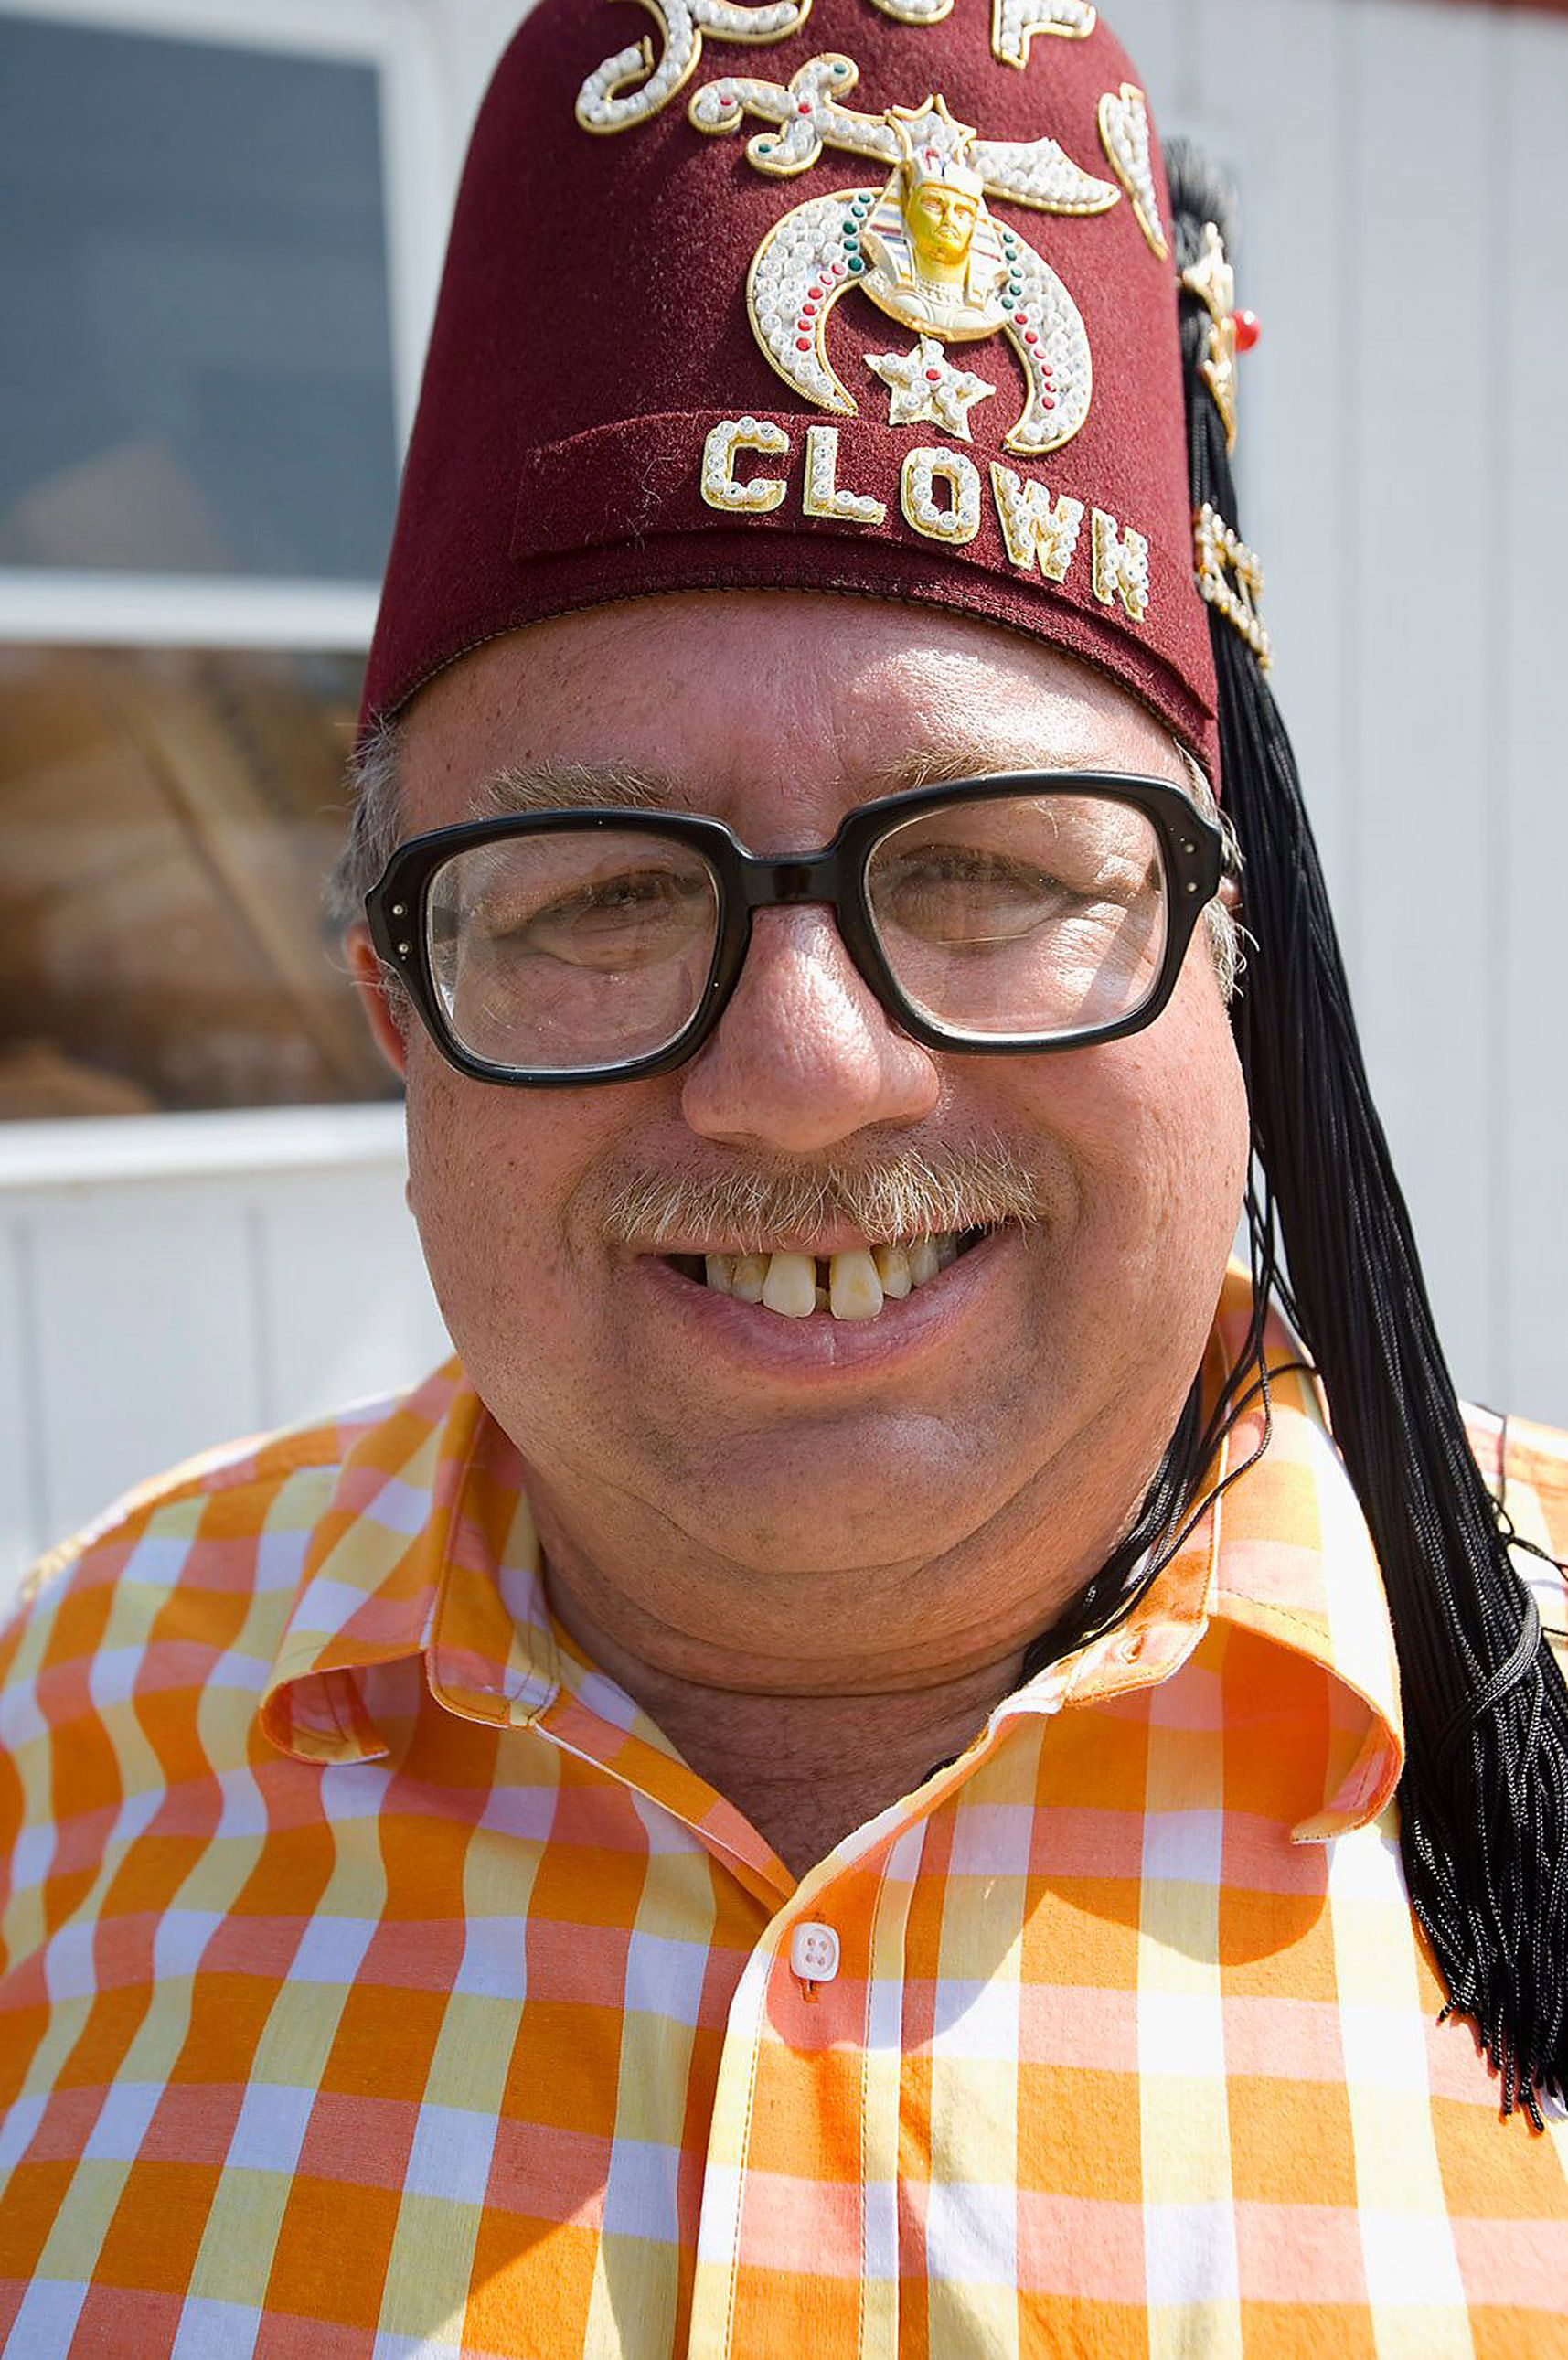 shriner clown for editorial photoshoot